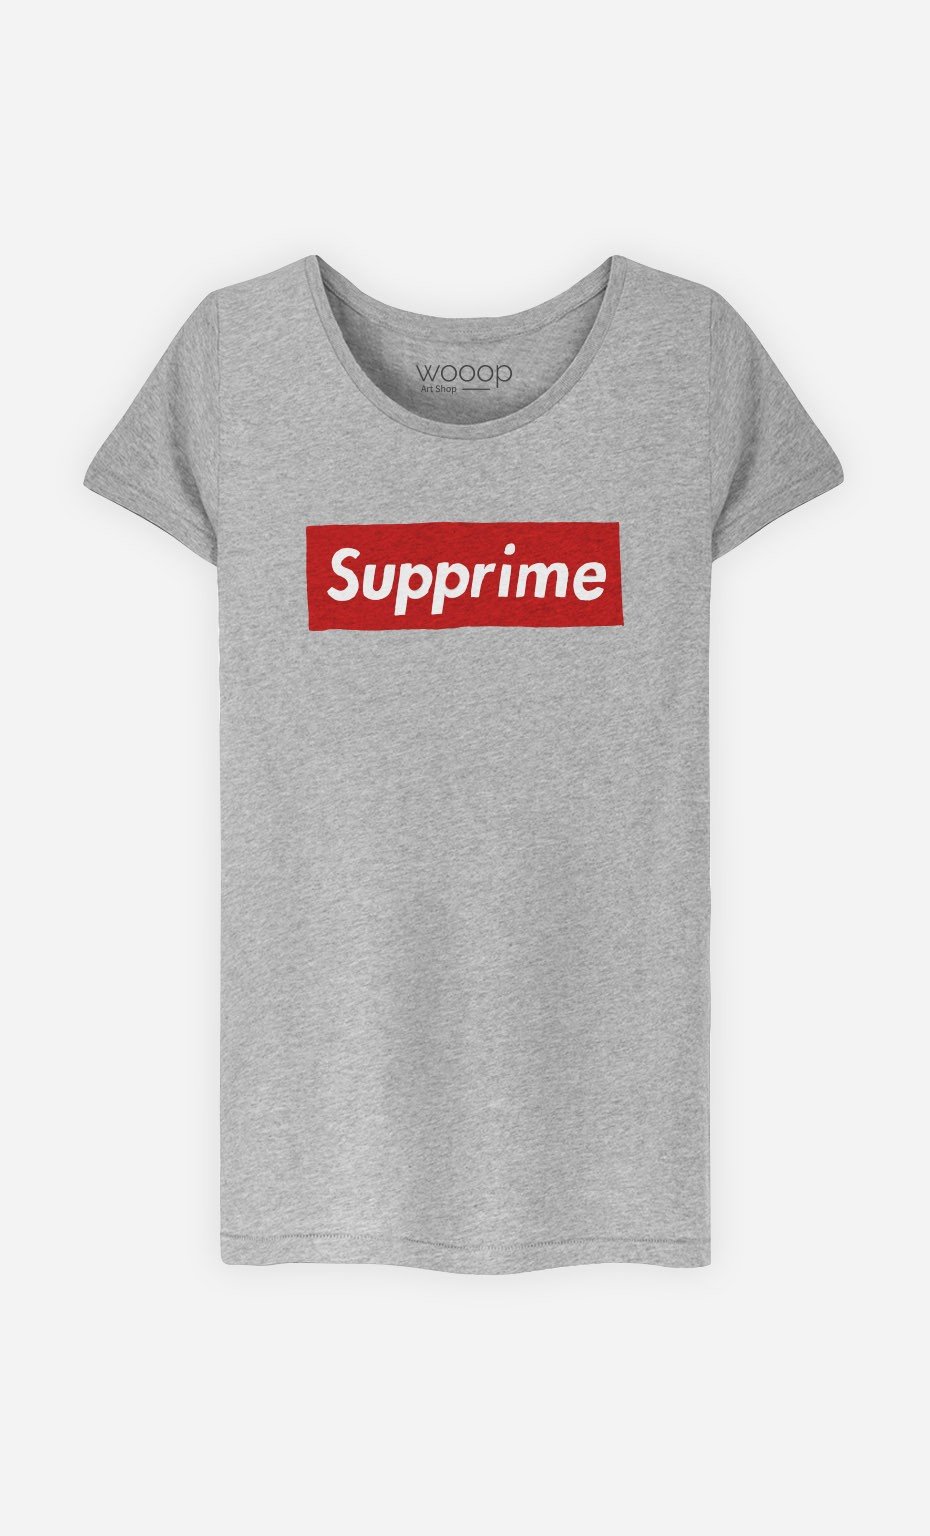 T-Shirt Supprime